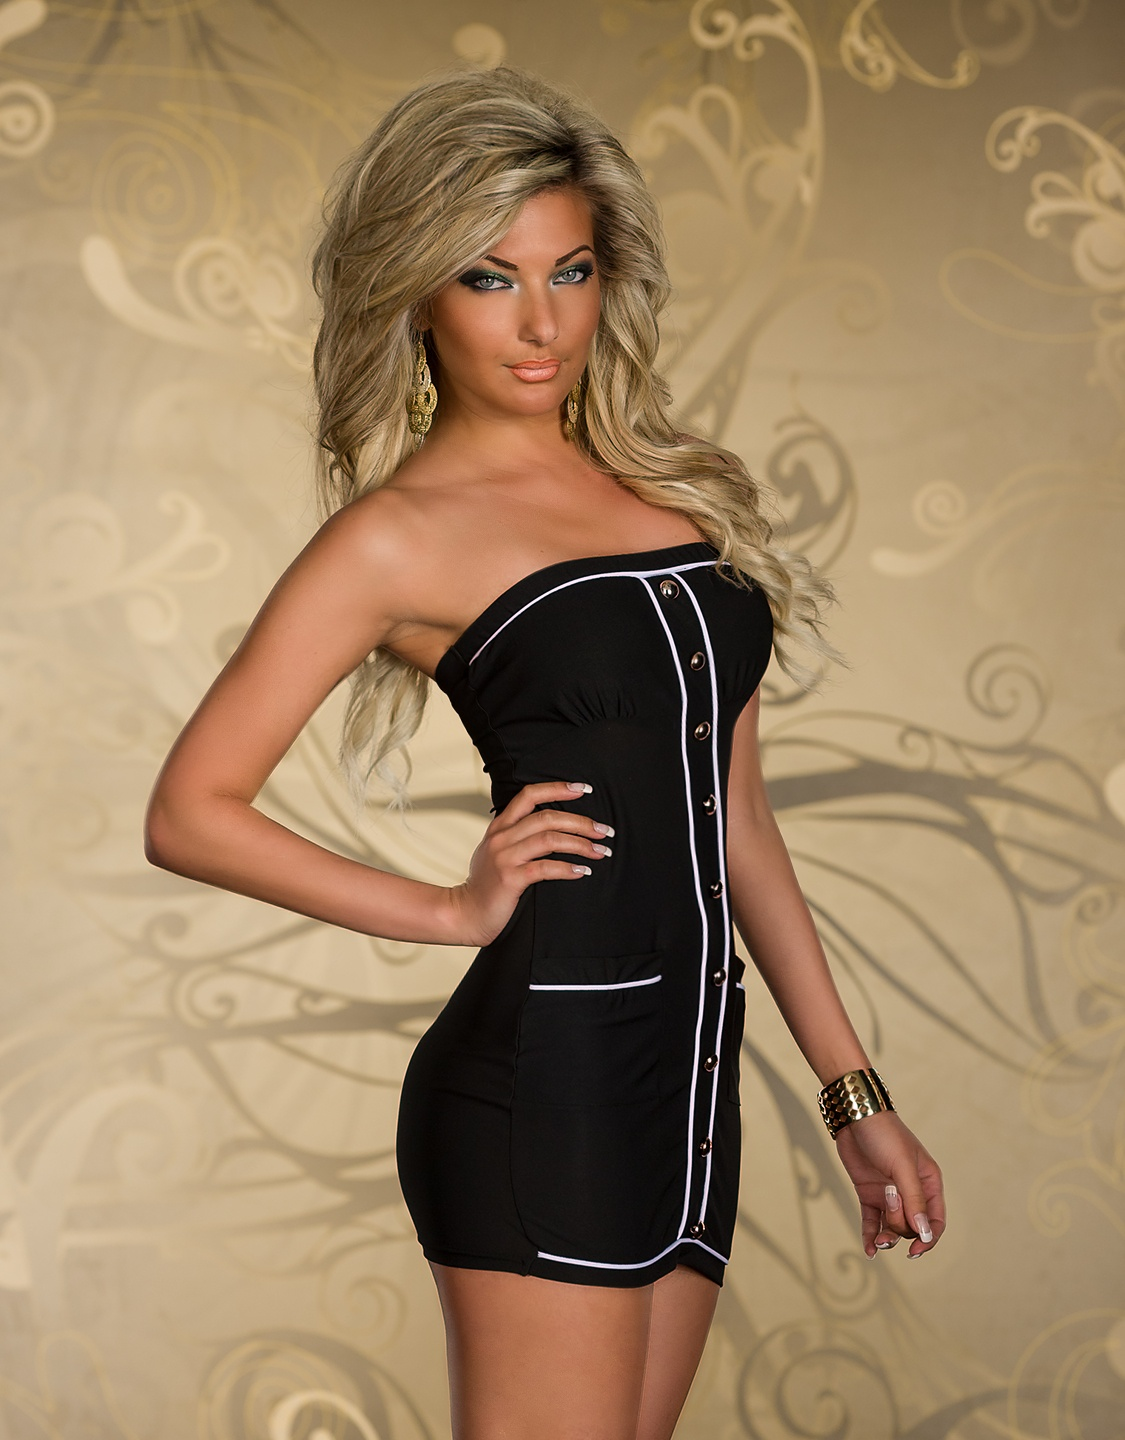 Black Strapless Dress With Buttons And White Stripes